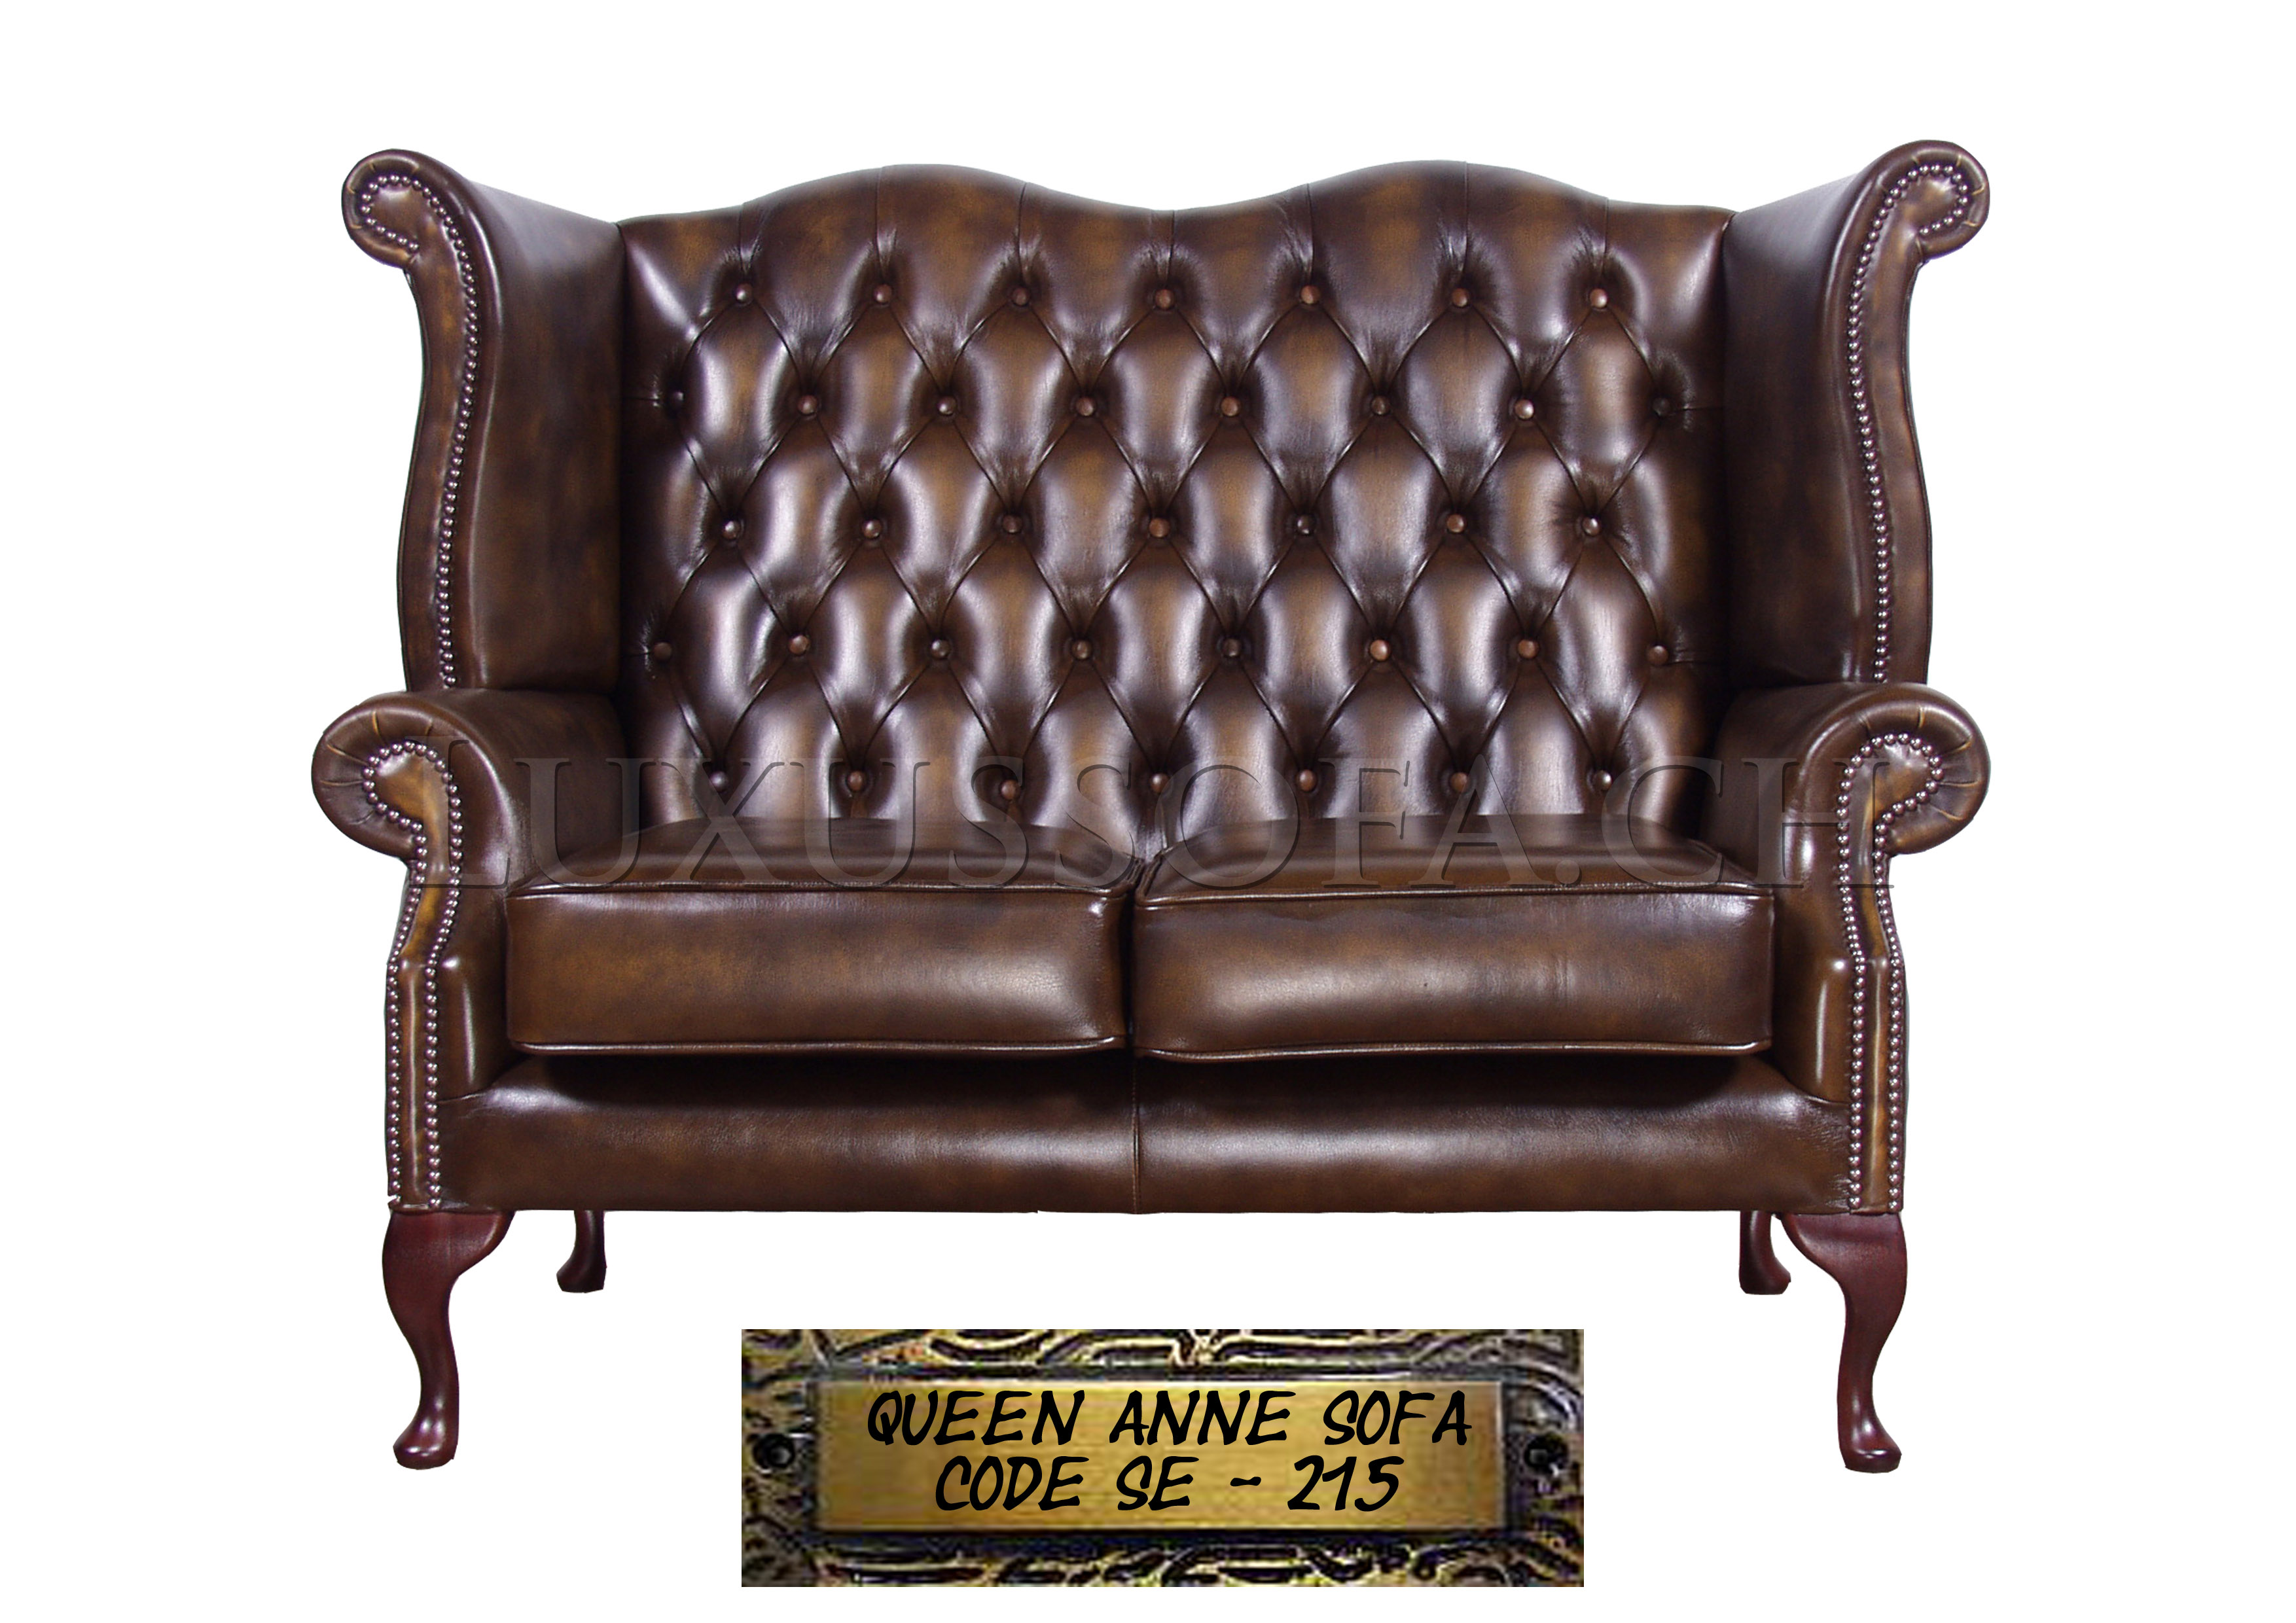 Queen Anne Sessel Chesterfield Sofa Ch Sofas Sessel Stühle Polstermöbel